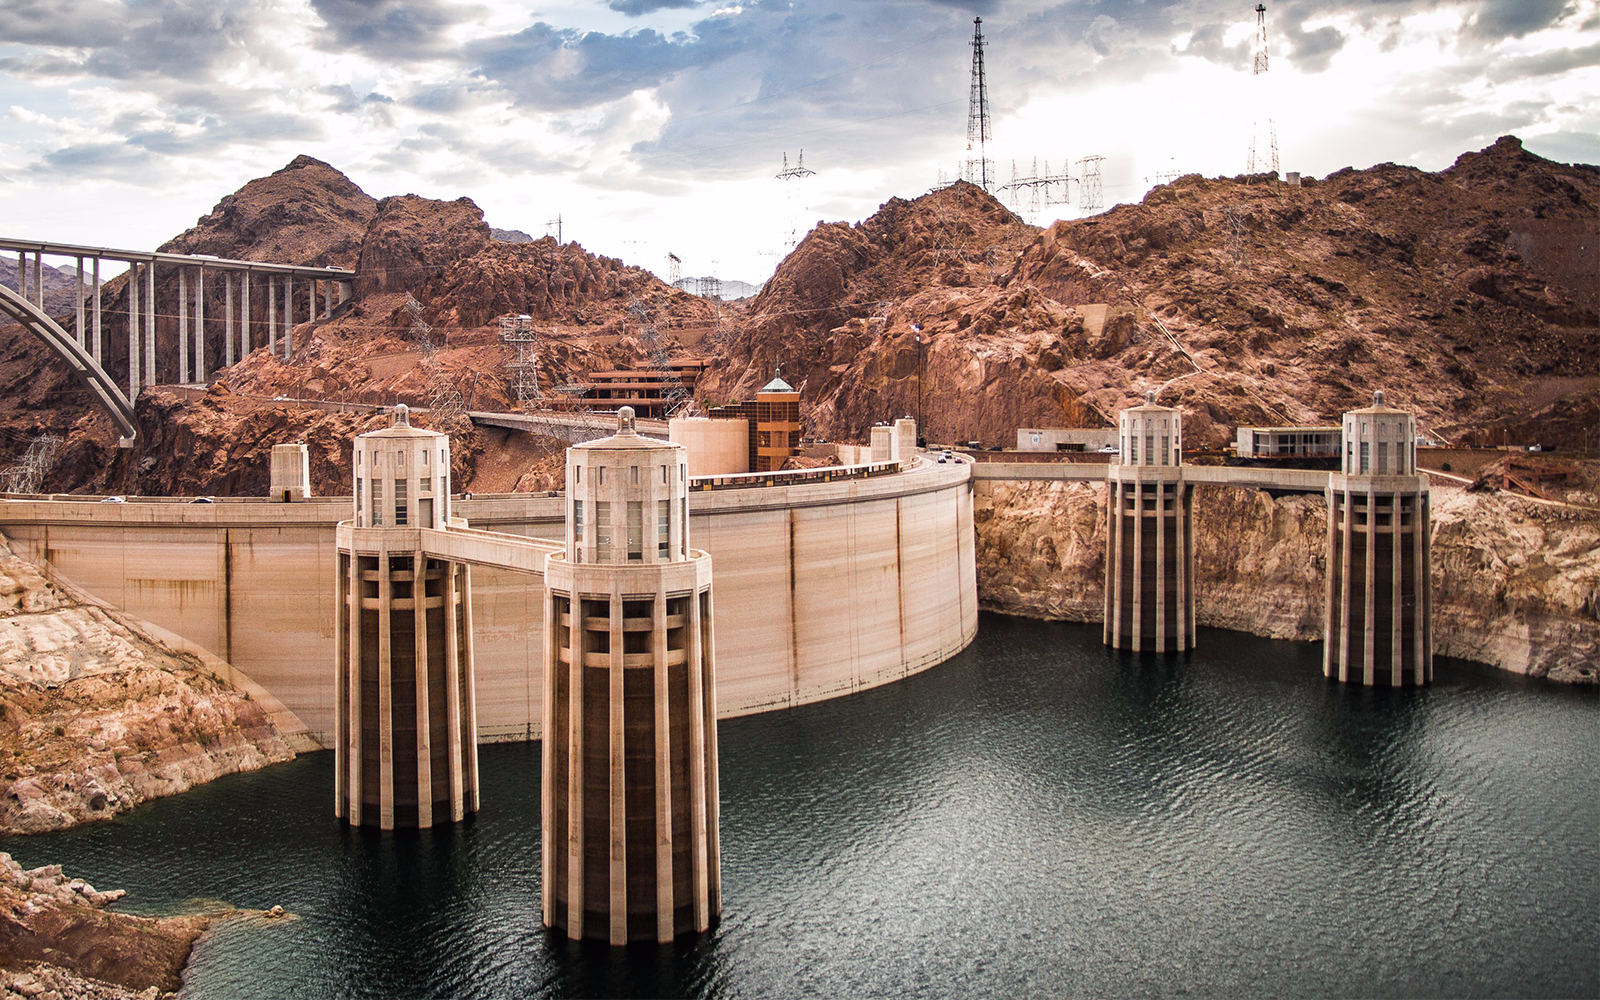 grand canyon helicopter tours prices with Visionary Air And Hoover Dam Bus Tour on Visionary Air And Hoover Dam Bus Tour furthermore Grand Canyon Connoisseur With Helicopter also Mini Baja Chase Night together with Mustang Faq besides Havasu falls packages.